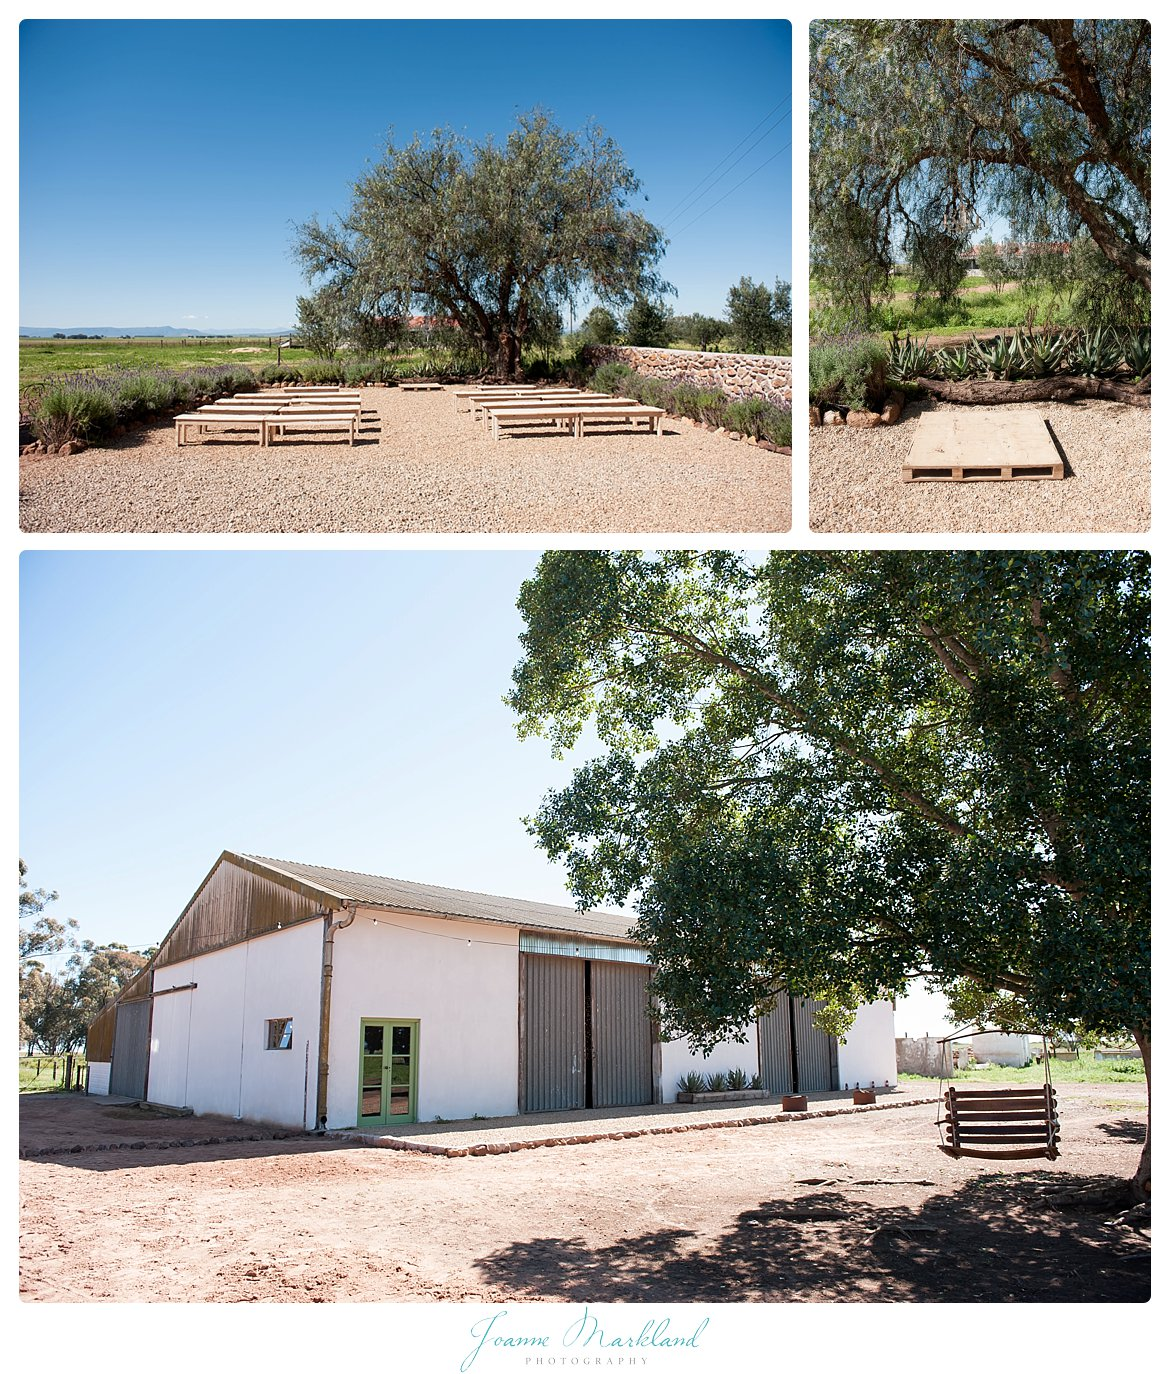 boorwater-wedding-hopefield-west-coast-cape-town-joanne-markland-photography-004